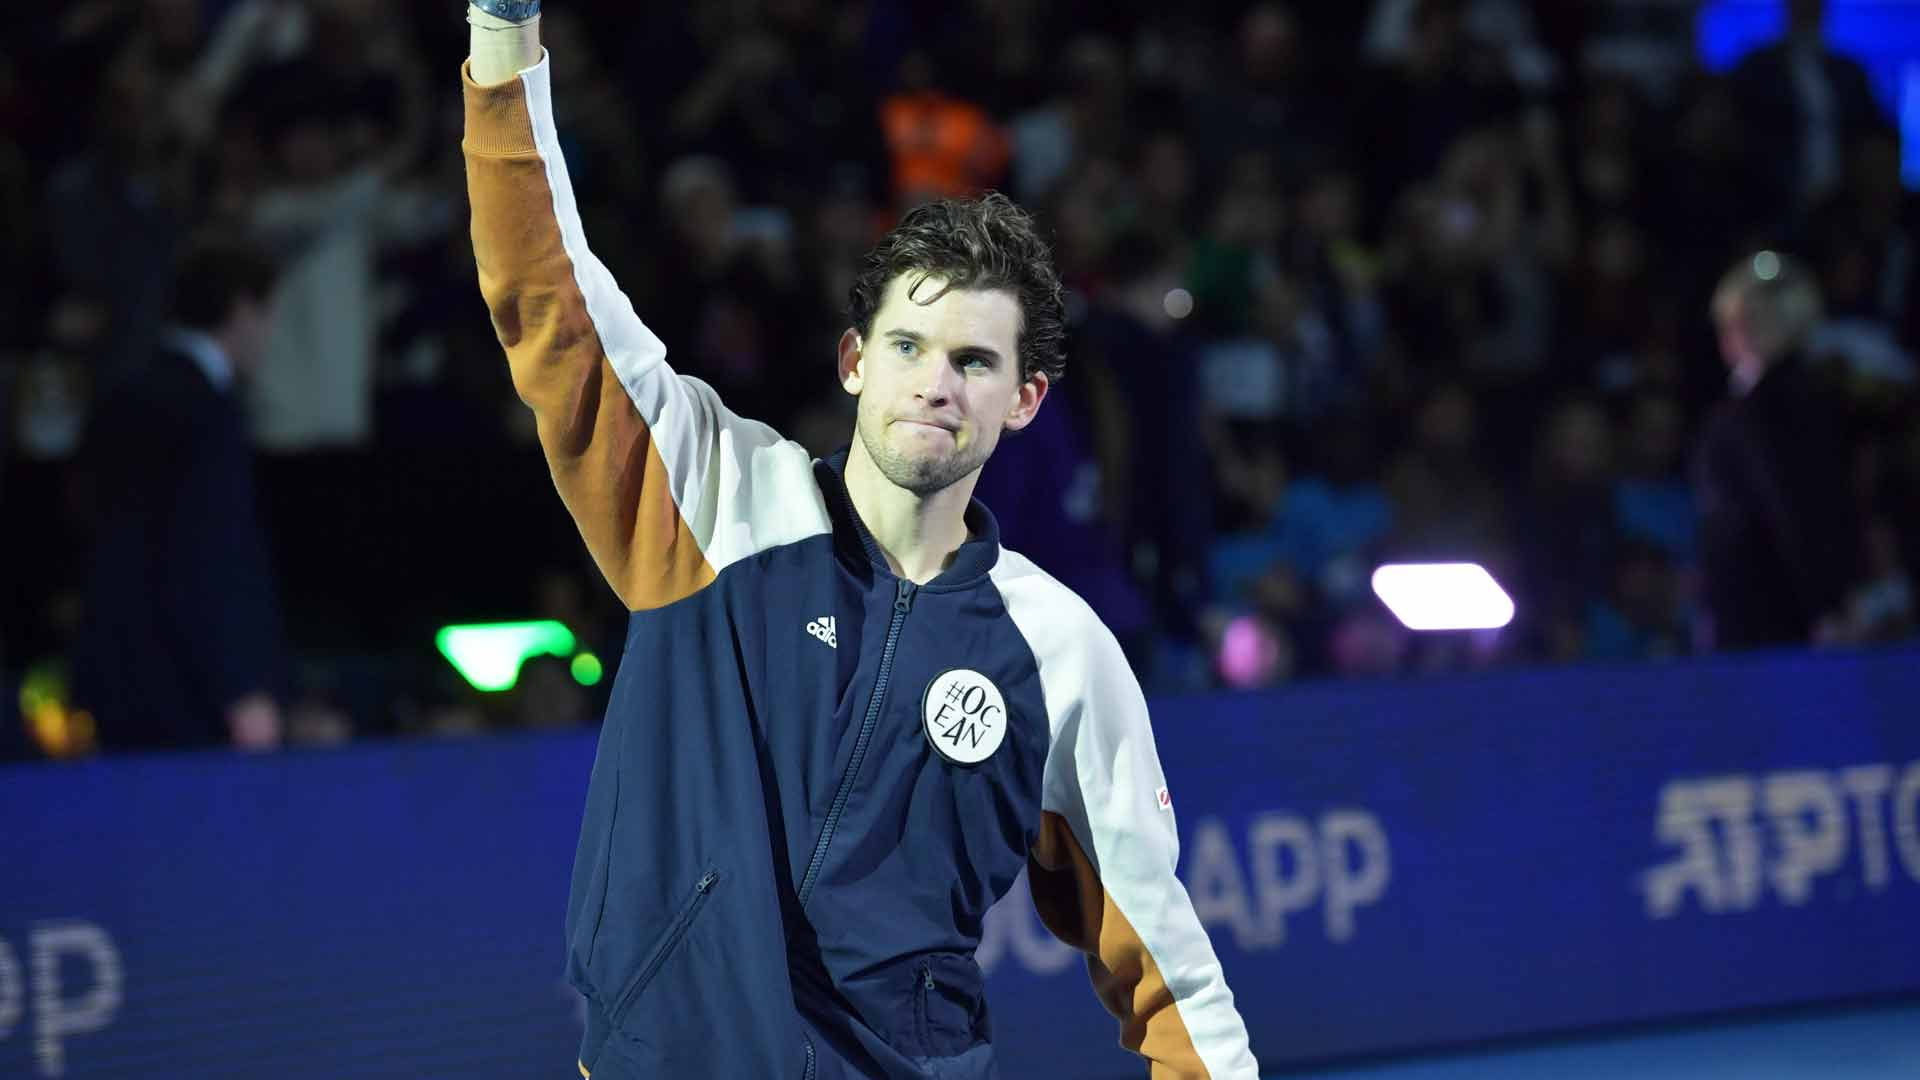 Dominic Thiem Nitto ATP Finals 2019 London Sunday